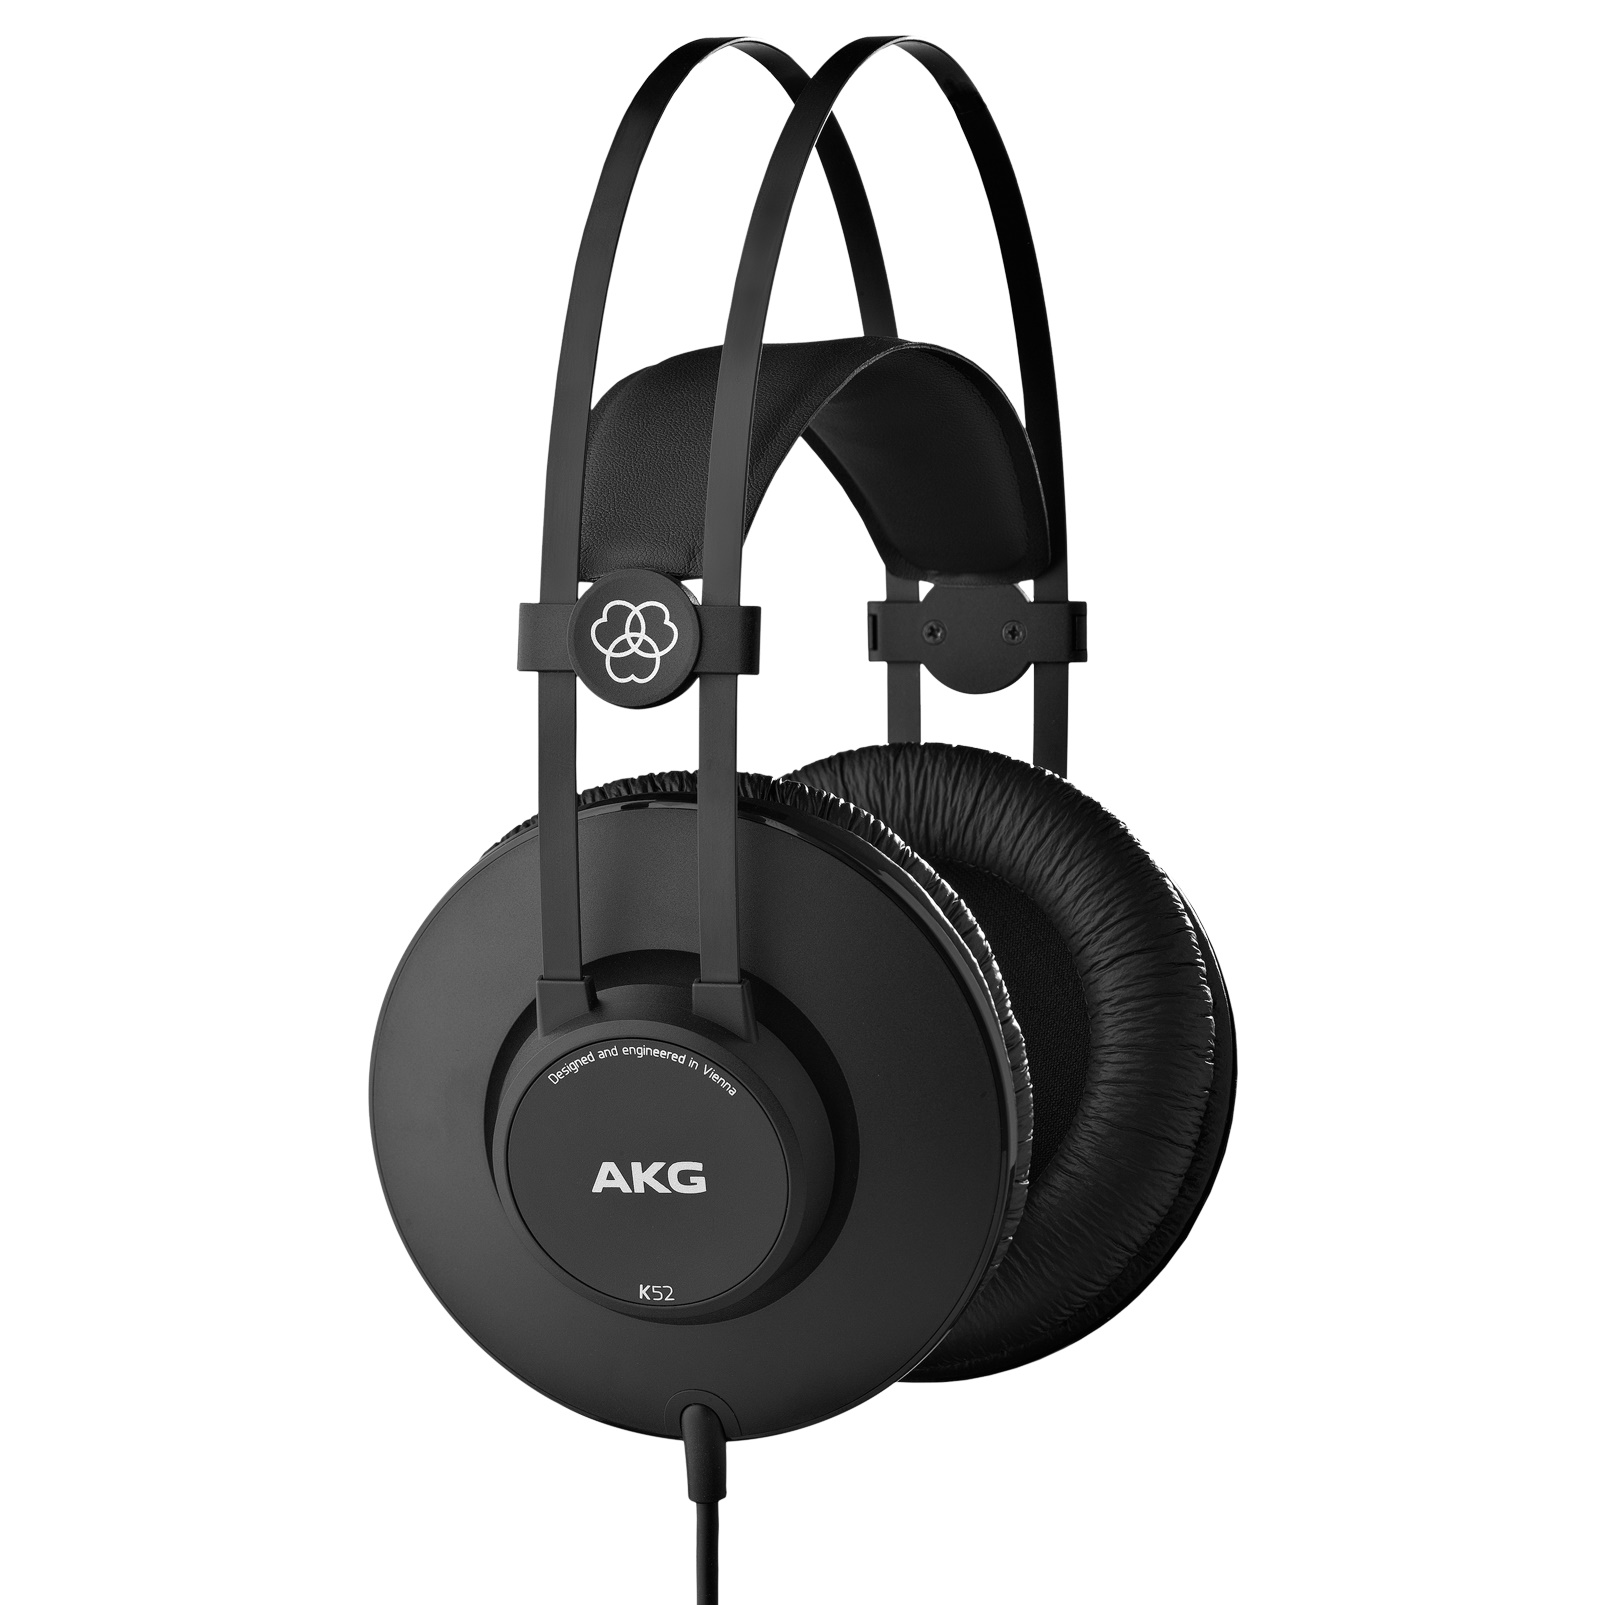 Fone de Ouvido AKG K52 Tipo Headphone Closed-back